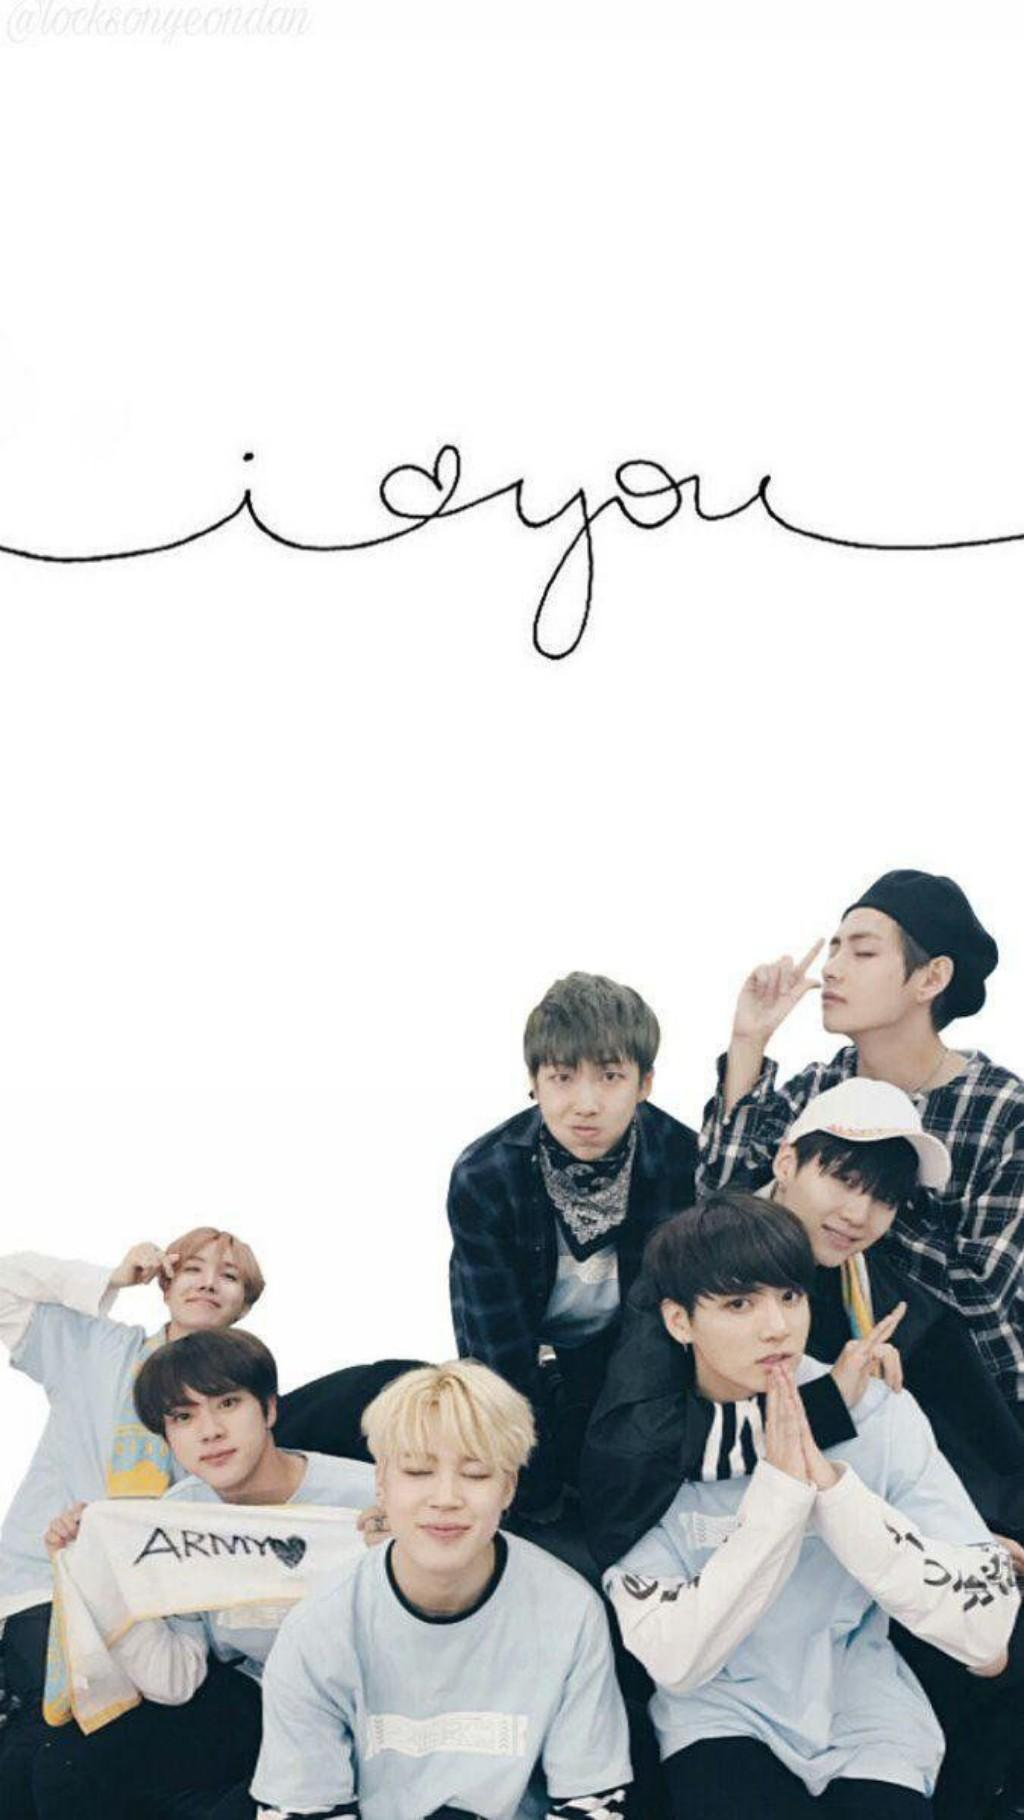 BTS Wallpaper HD 2020 for Android - APK Download